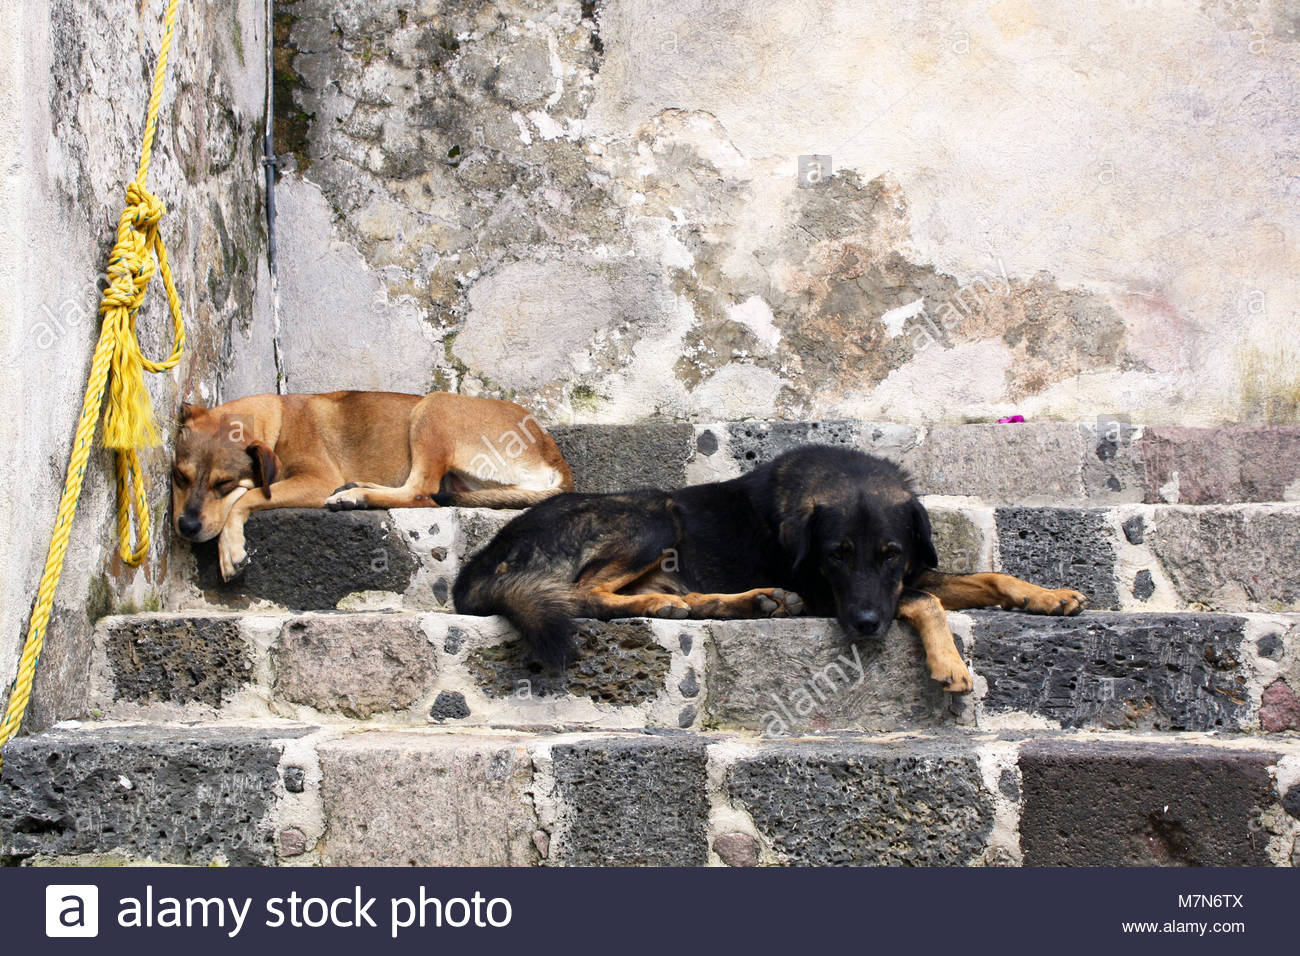 A couple of dogs sleeping peacefully at some stair steps at Tepoztlán's public square. - Stock Image